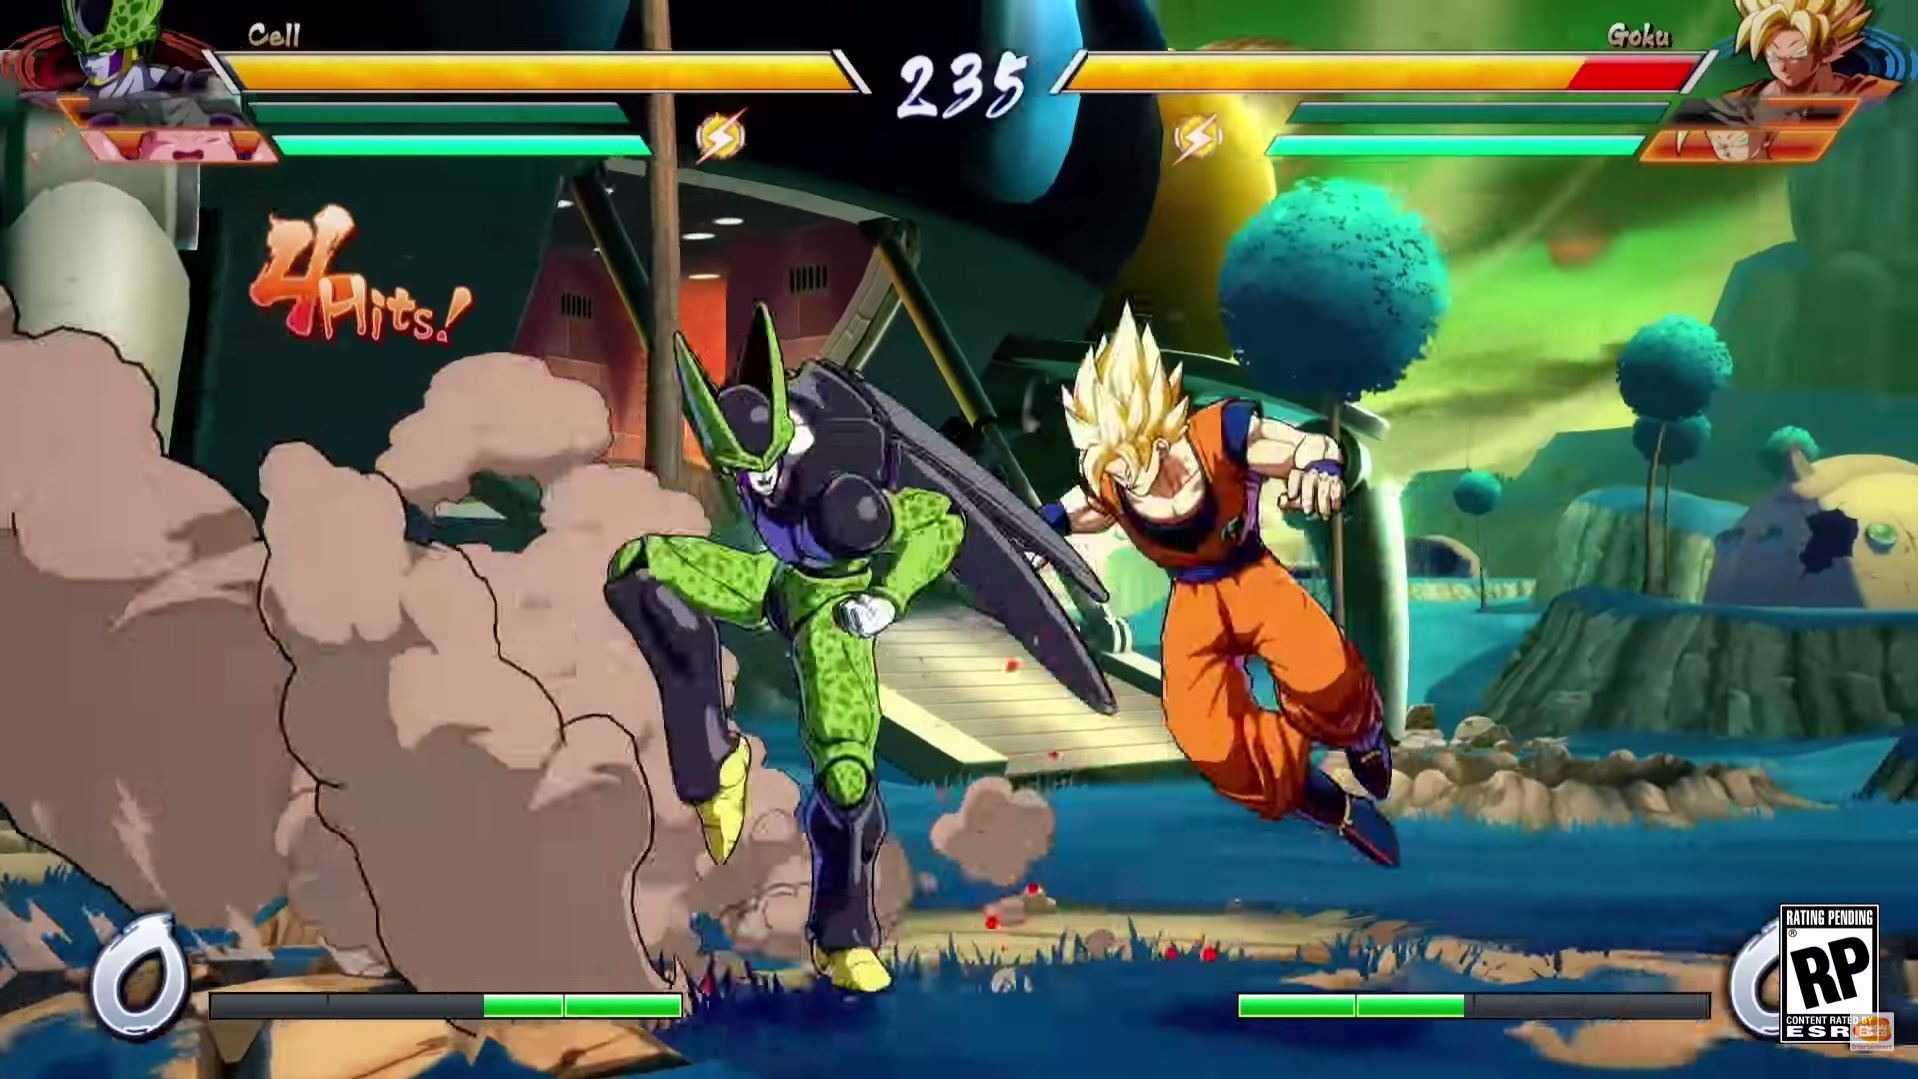 What To Watch This Weekend: Dragon Ball FighterZ, Rainbow Six Siege, And Brawlhalla